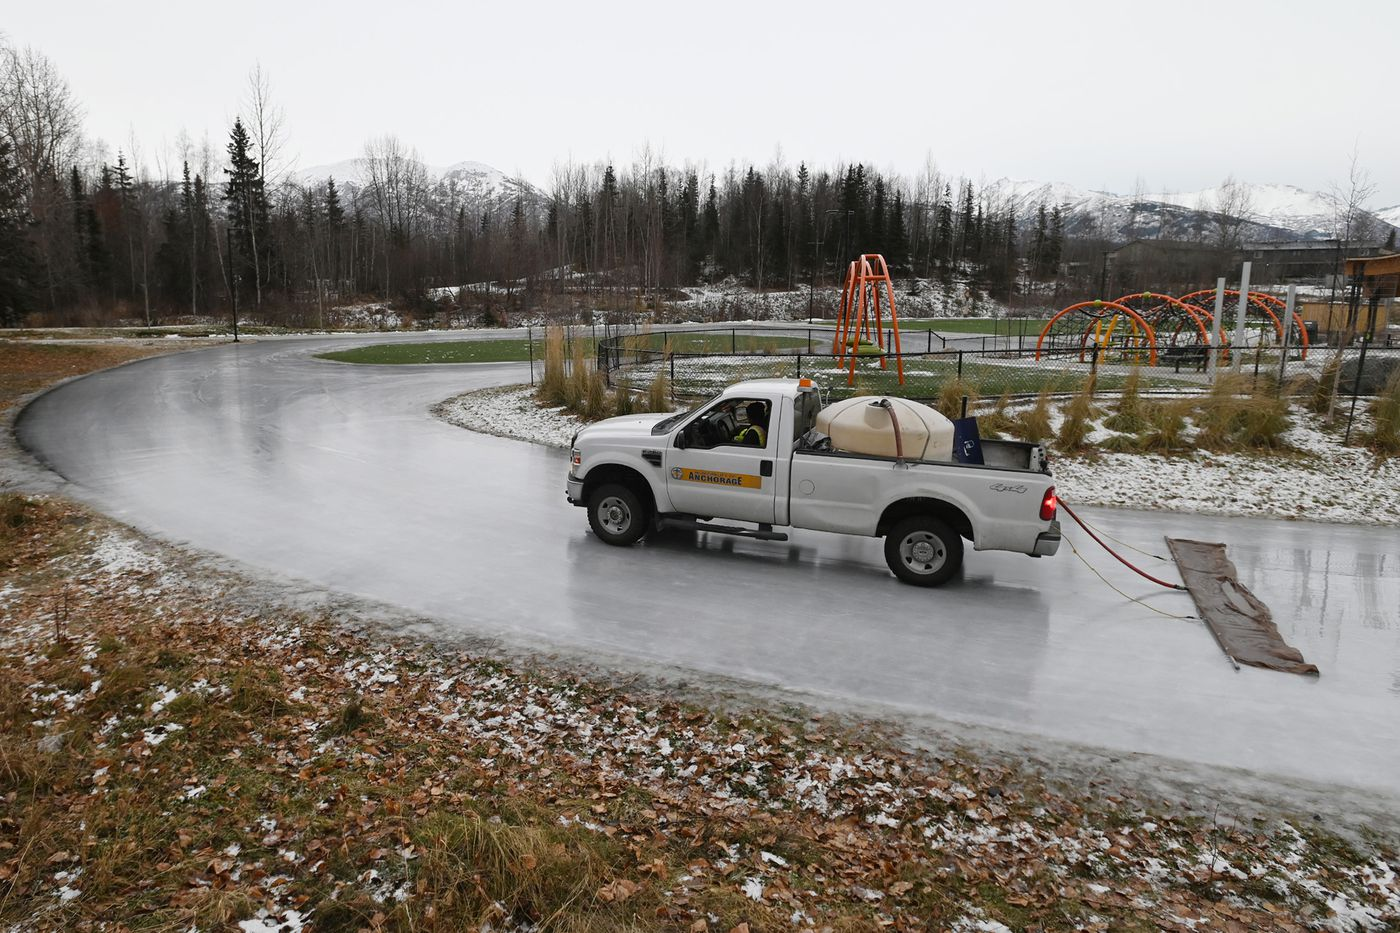 Municipality of Anchorage Parks and Recreation workers hot mopped the ice skating surface at Chanshtnu Muldoon Park on Thursday, Nov. 5, 2020. (Bill Roth / ADN)